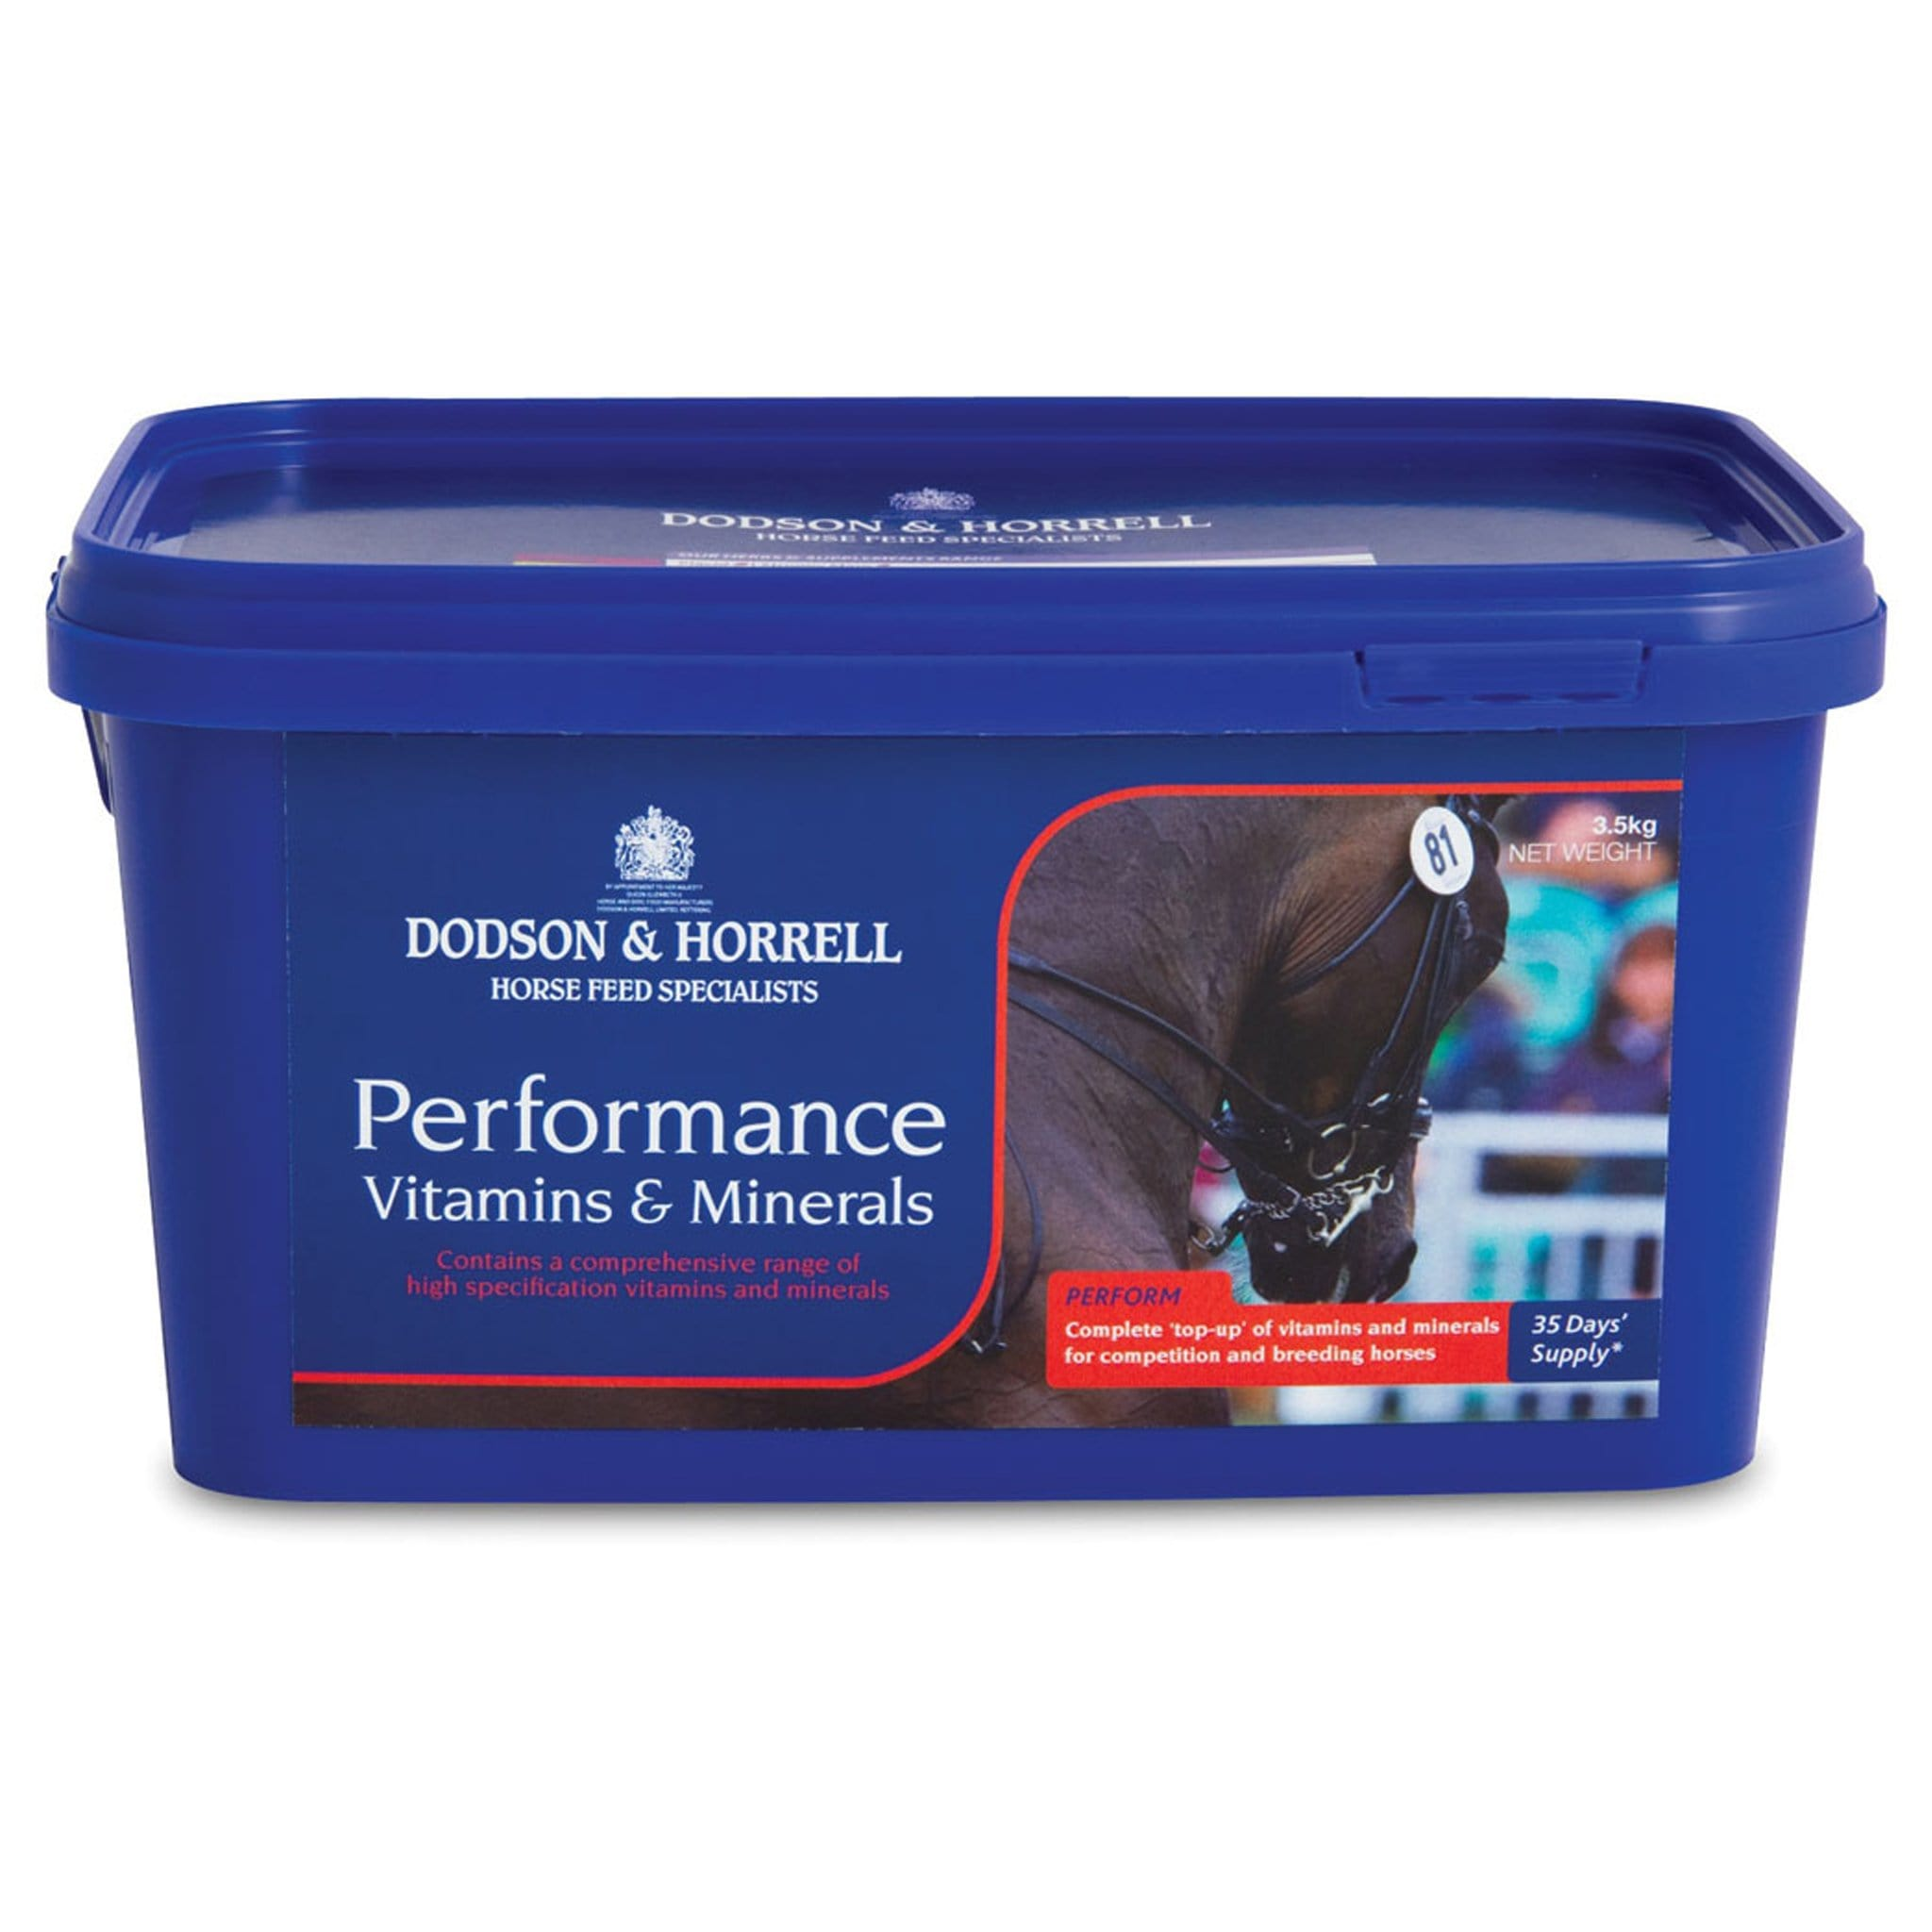 Dodson and Horrell Performance Vitamins & Minerals 1117